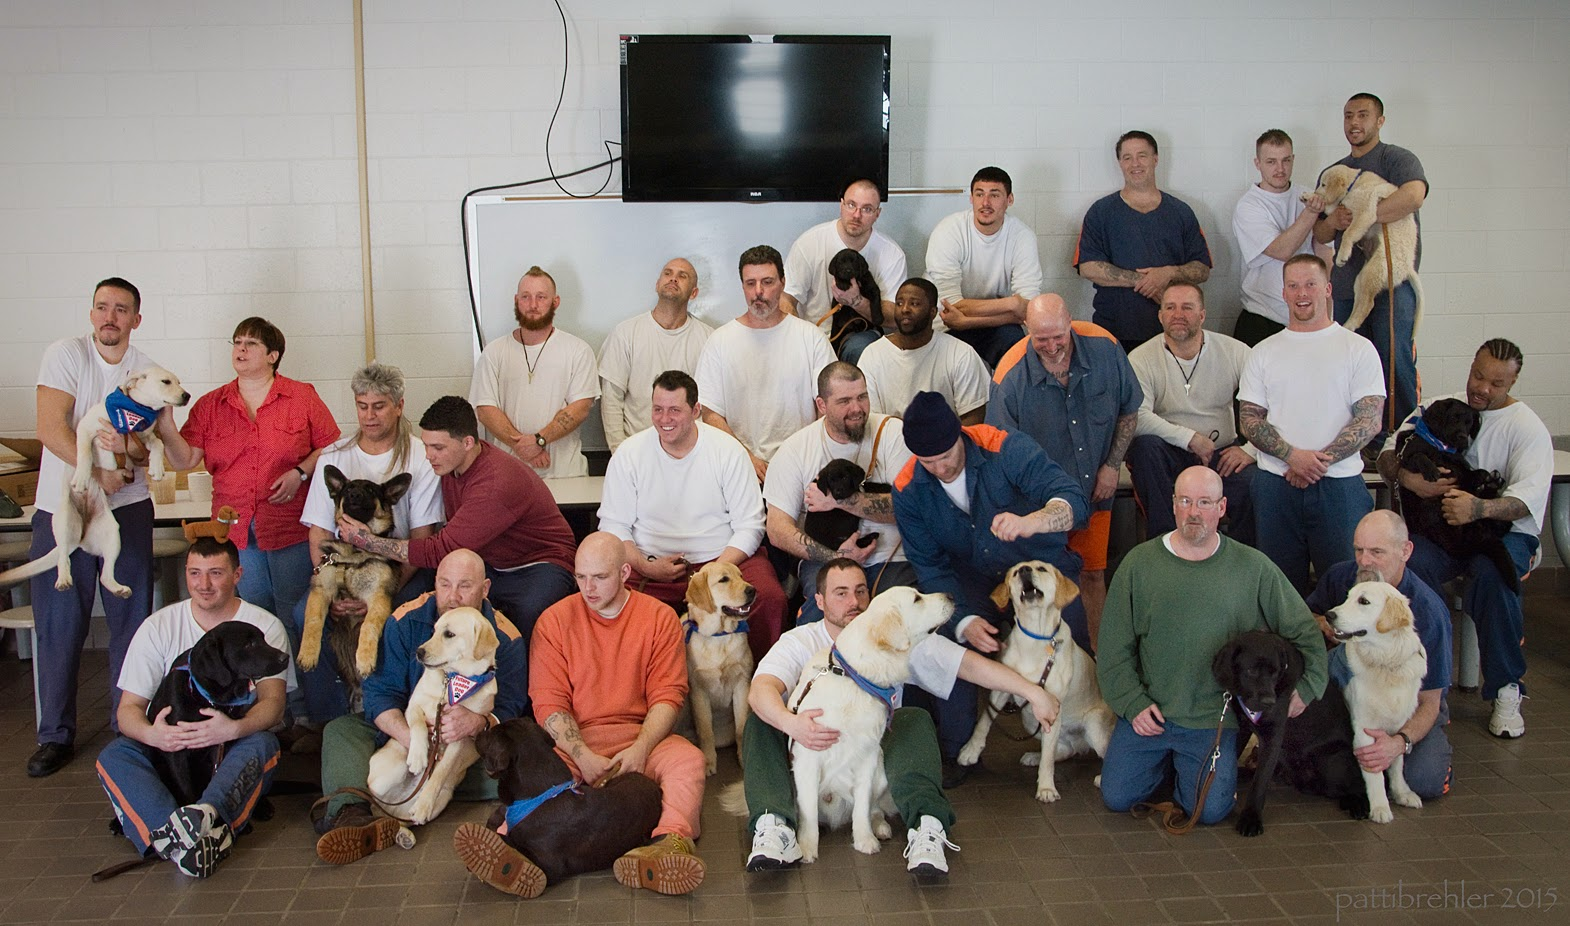 A group shot of 25 men and one women, with 13 puppies. There are four overlapping rows, the first row are ment kneeling or sitting on the floor with 7 puppies, the second row is six men and one woman (she is second from the left) standing or sitting behind the first row holding three puppies, the third row is eight men, mostly standing behind the 2nd row to the right, with on man sitting on the far right holding one puppy, the last row are five men standing on chairs behind the rest with the man on the far right holding a puppy. There is a big flat screen television on the white brick wall behind the group.